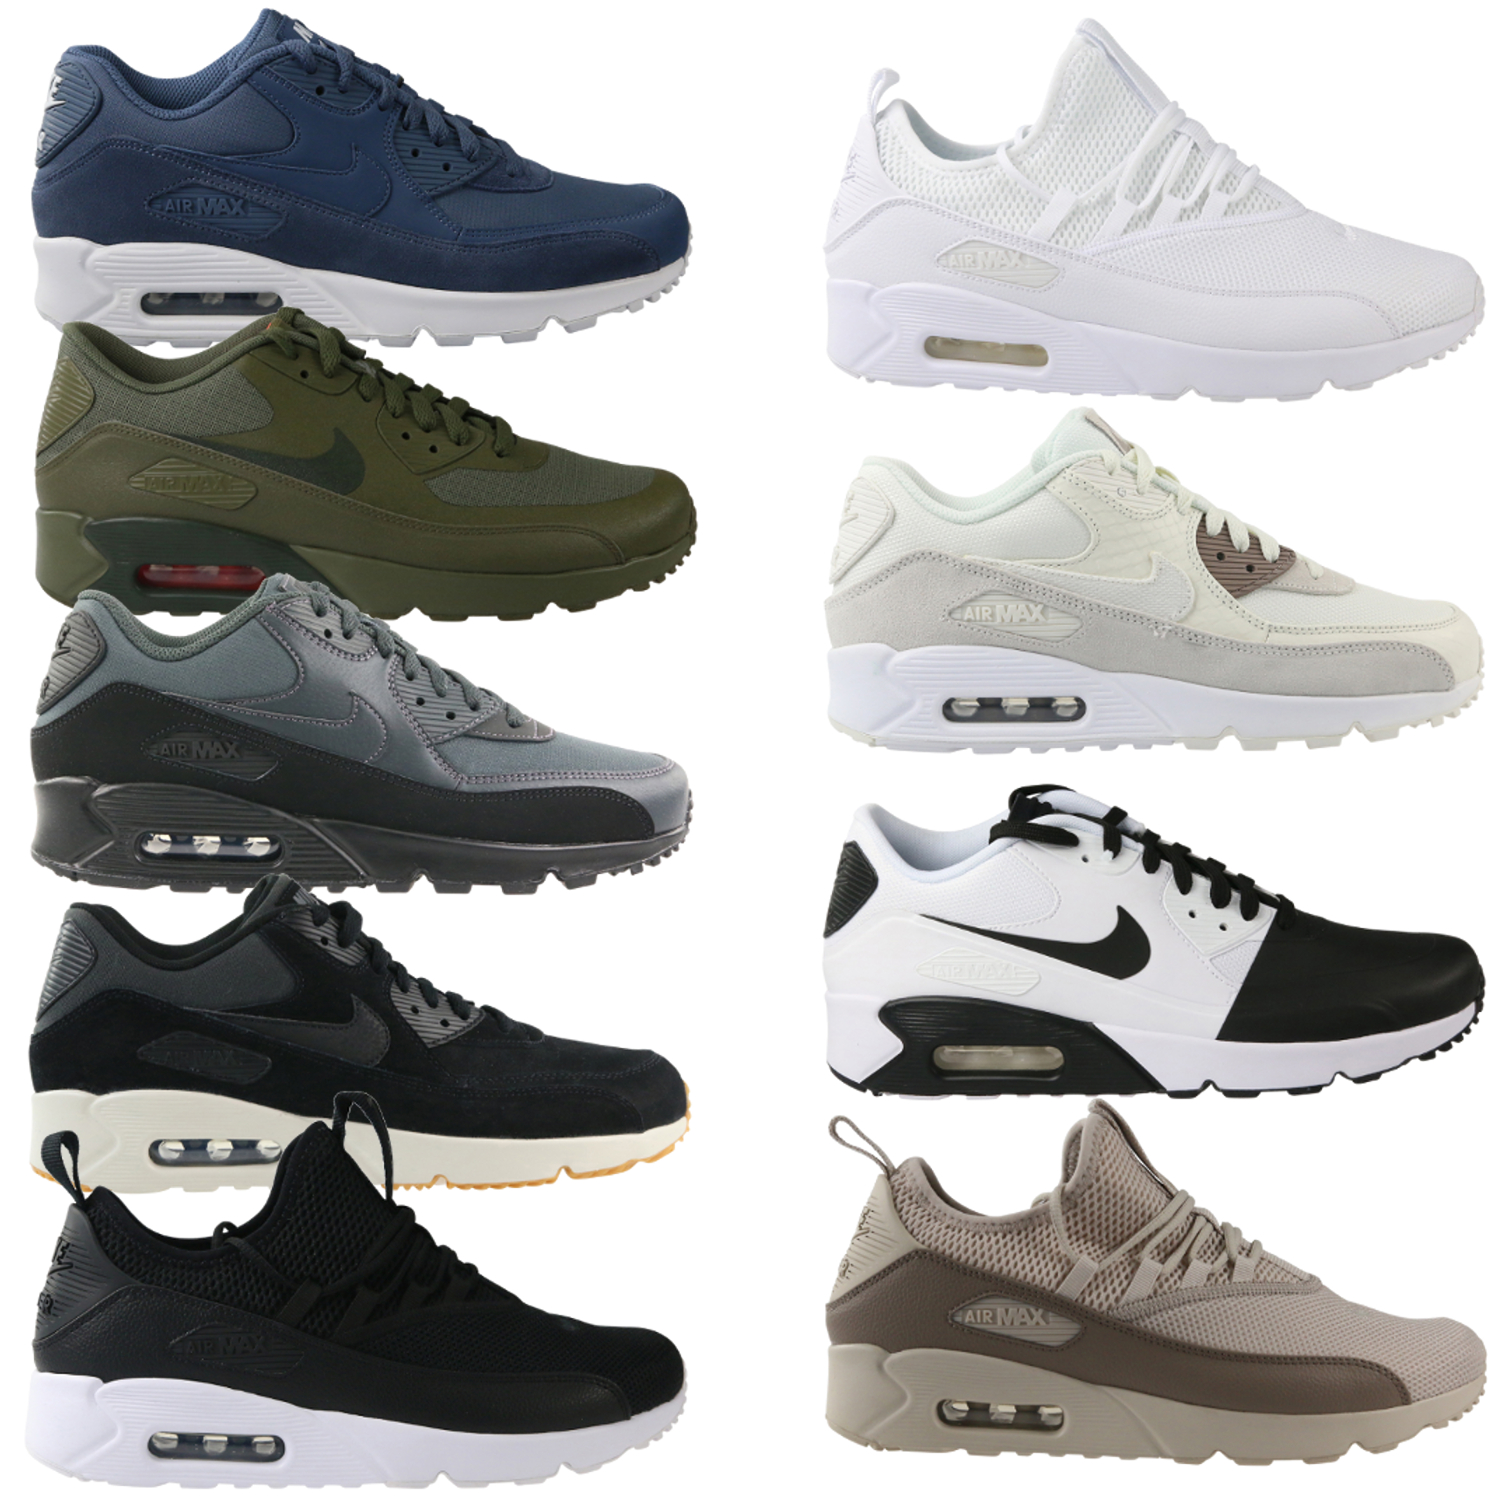 Details about Nike Air Max 90 Essential Ultra 2.0 EZ Sneaker Shoes Mens show original title